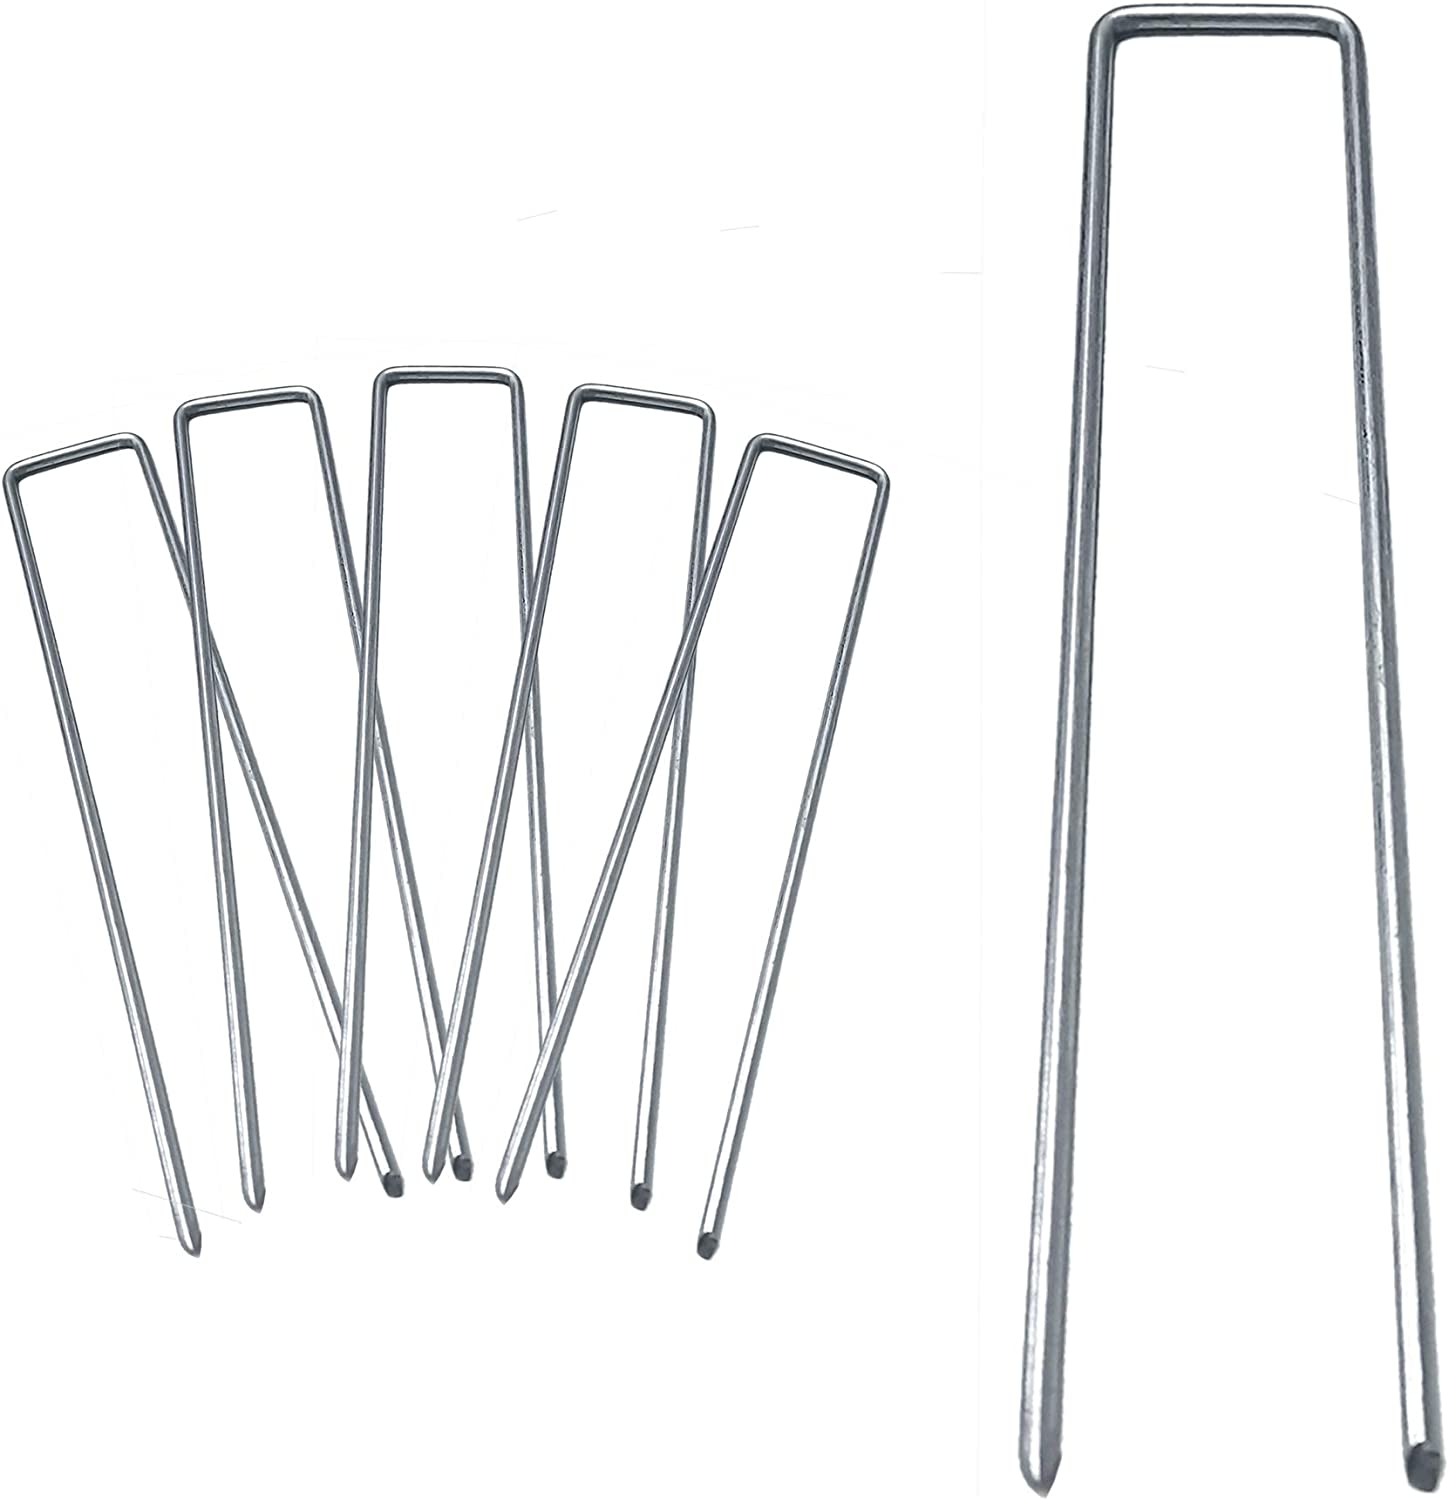 BEBEKULA 100 Pack 6 Inch Garden Stakes, Galvanized Landscape Staples, Heavy Duty Sod Pins for Weed Barrier Fabric, Ground Cover, Irrigation Tubing (100)